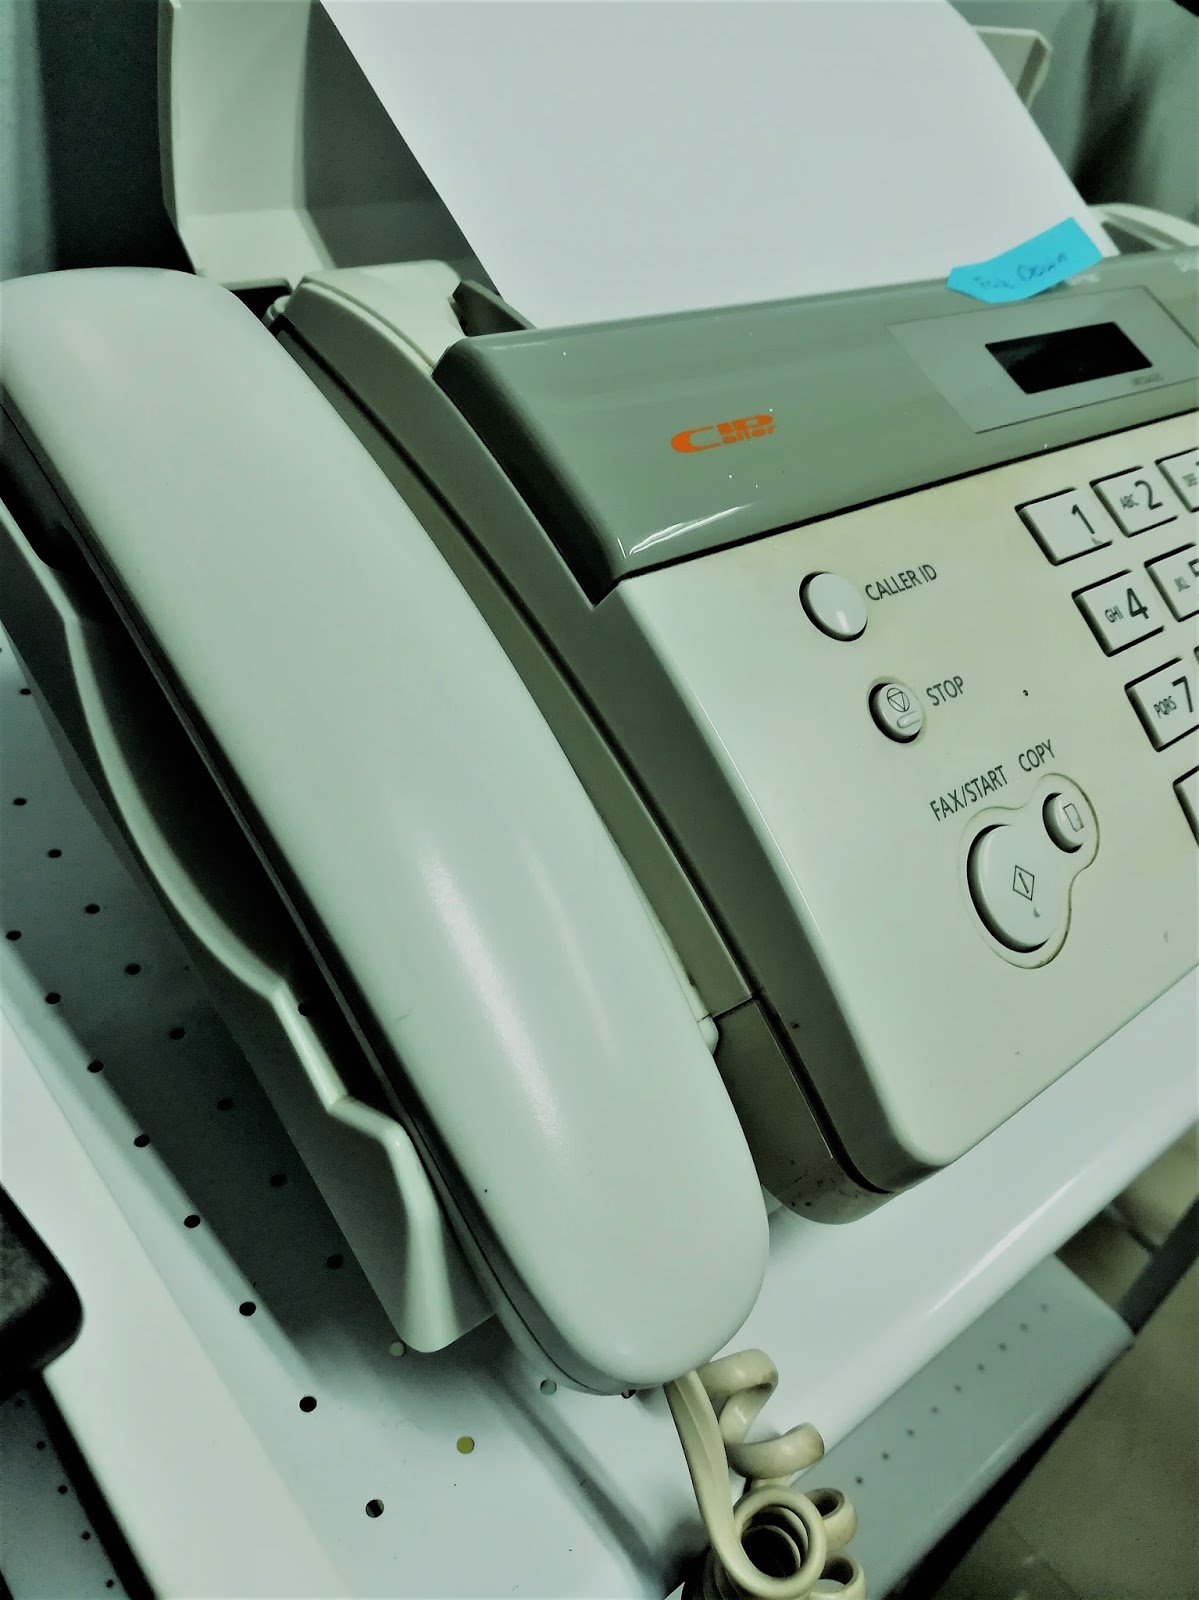 hight resolution of talkless simple steps to send fax message using fax machine